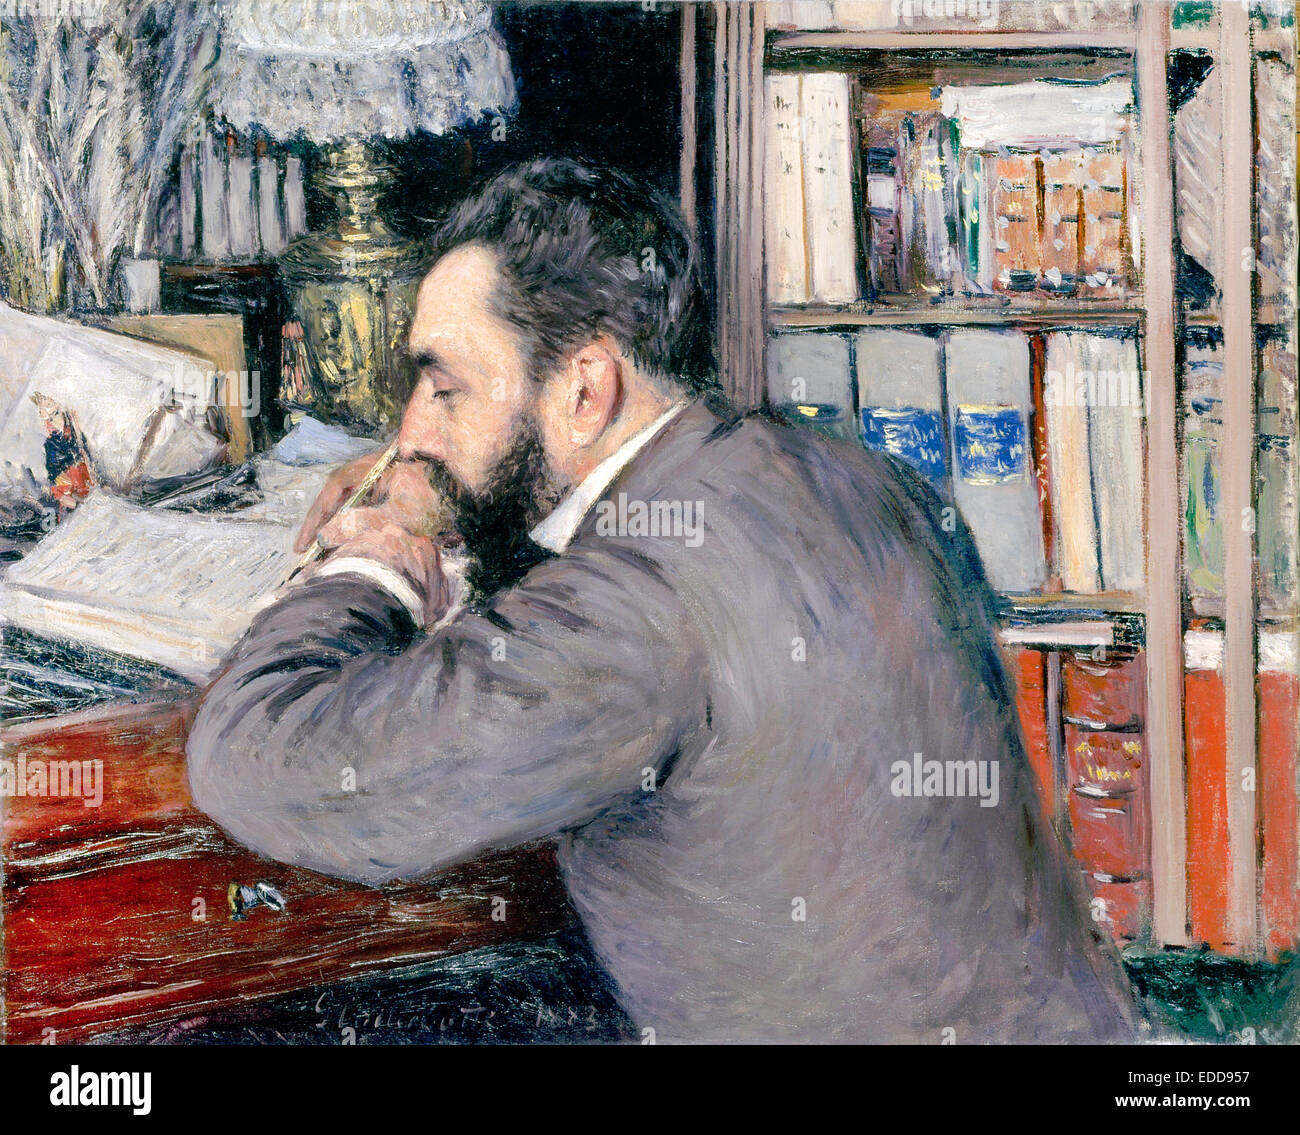 Gustave Caillebotte, Henri Cordier 1883 Oil on canvas. Musee d'Orsay, Paris, France. - Stock Image